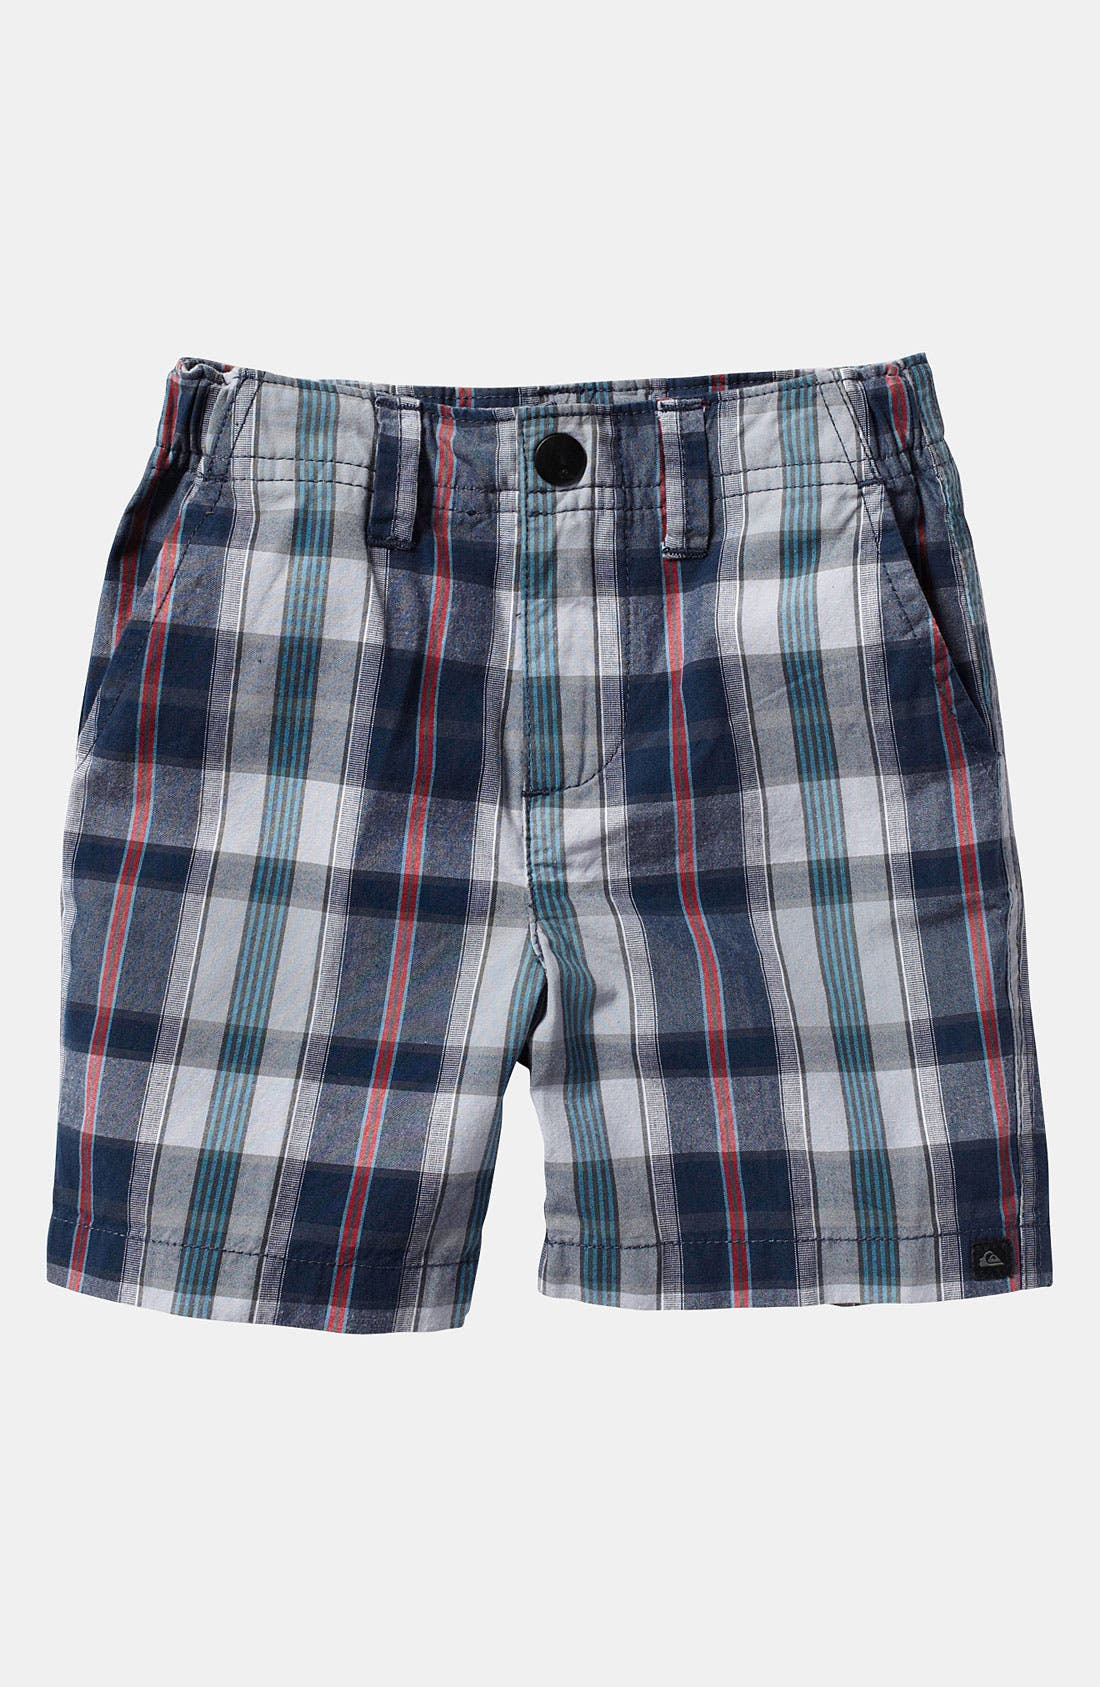 Main Image - Quiksilver 'Bookend' Plaid Shorts (Toddler)